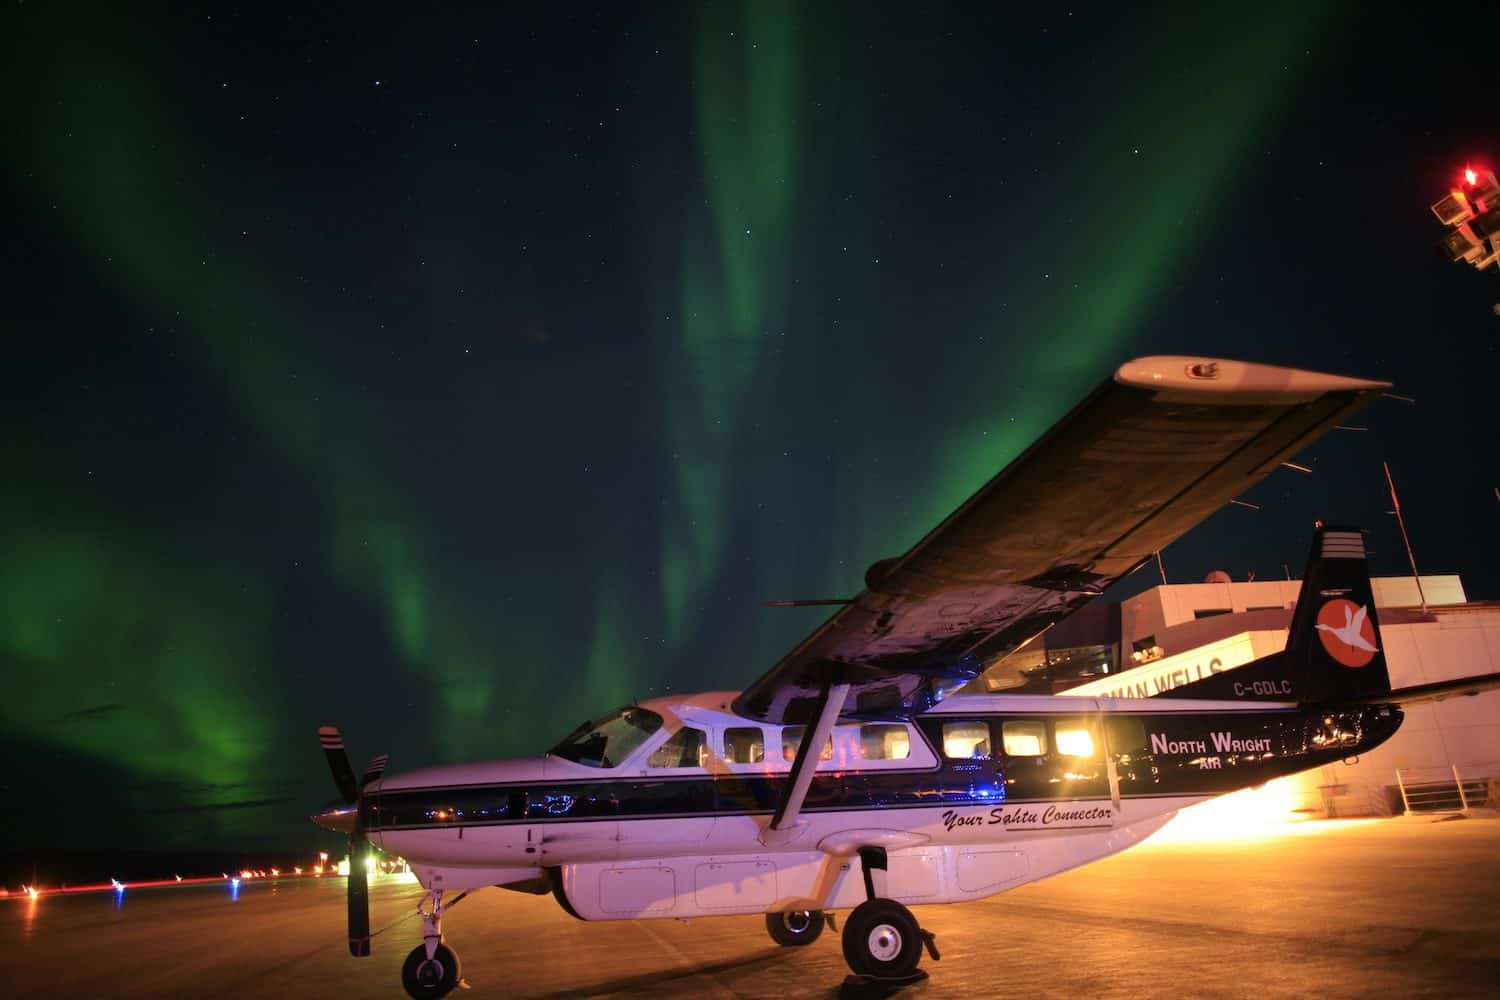 How to See the Northern Lights - Northwest Territories - Anson Chappell via Flickr